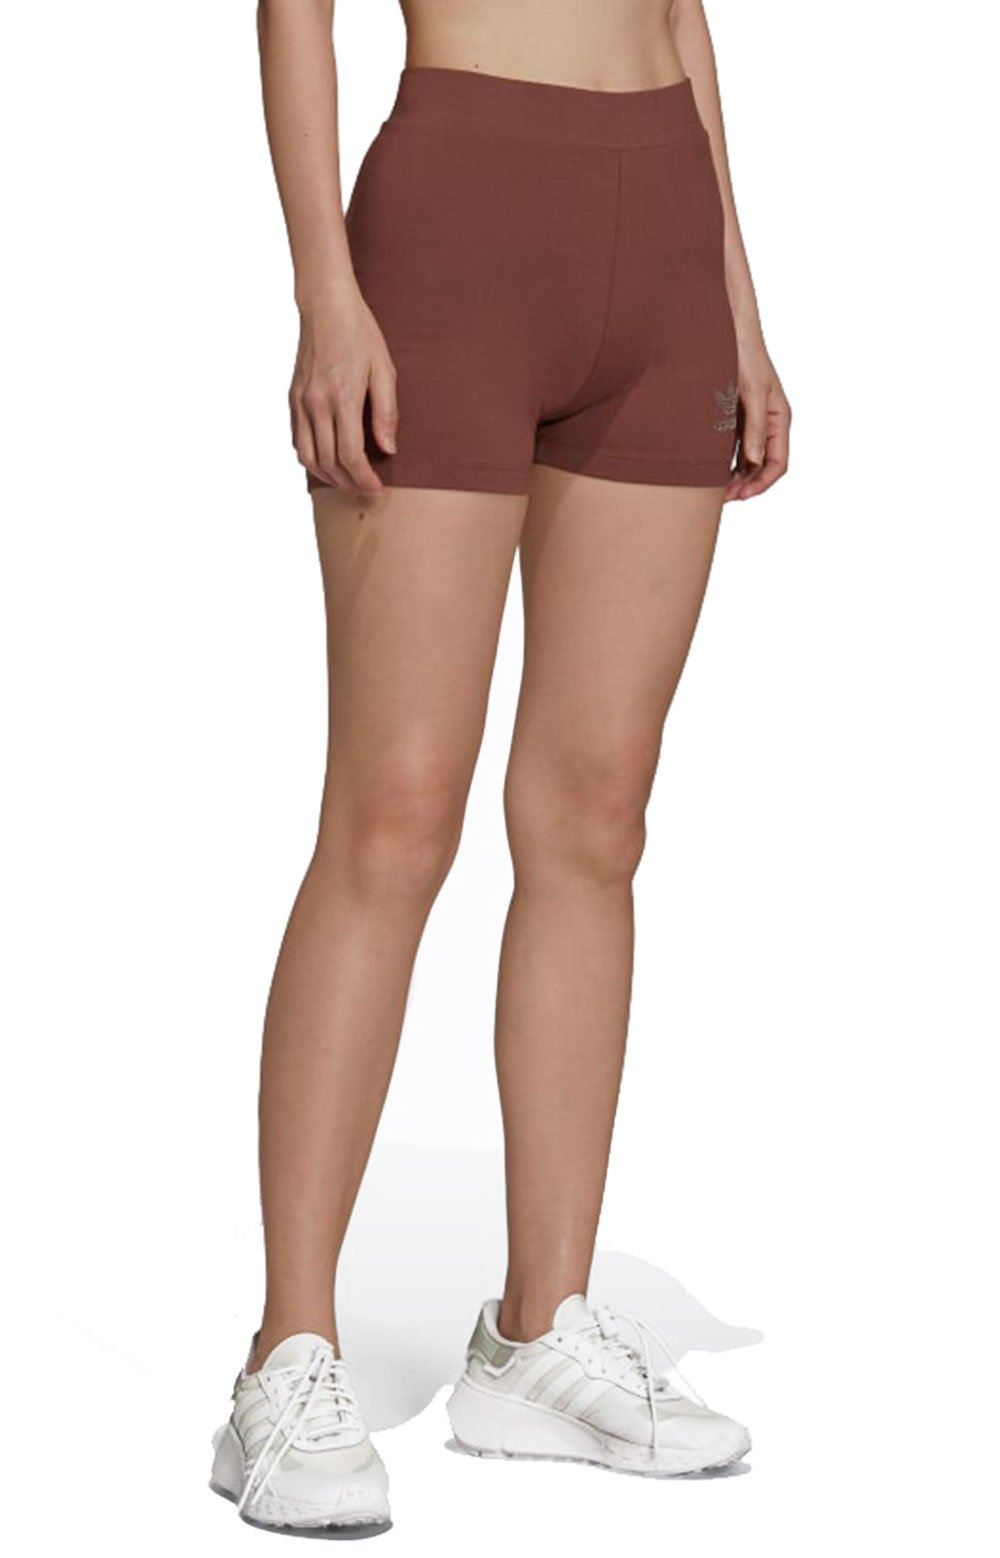 (HF9204) 2000 Luxe Shorts - Earth Brown